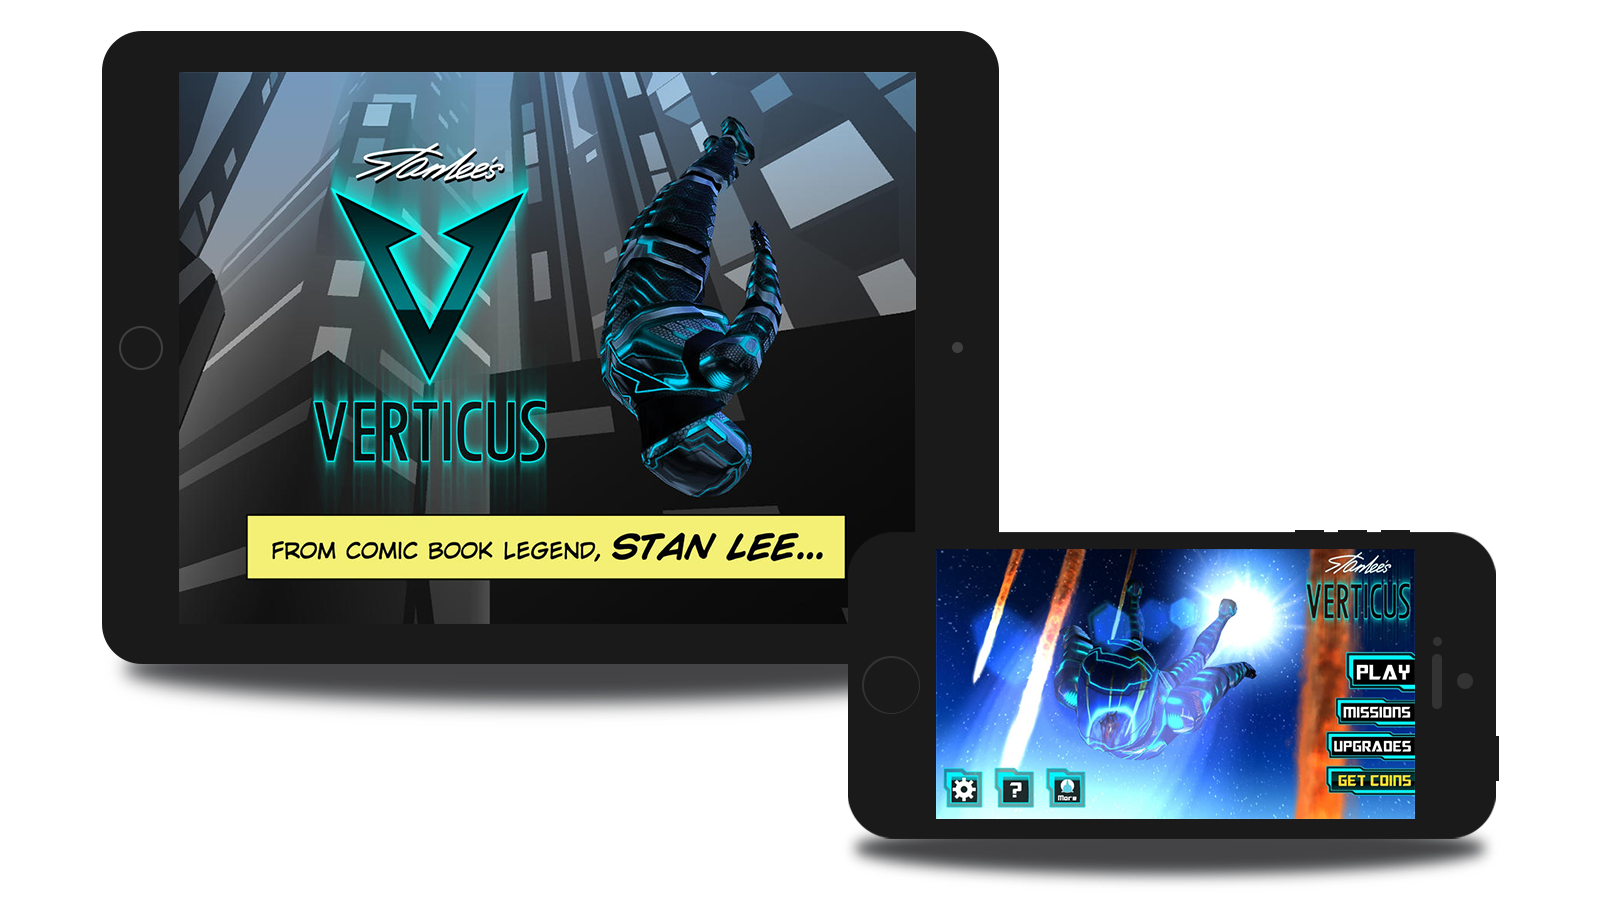 iPad and iPhone screen mockups of Verticus, a mobile game for iOS.